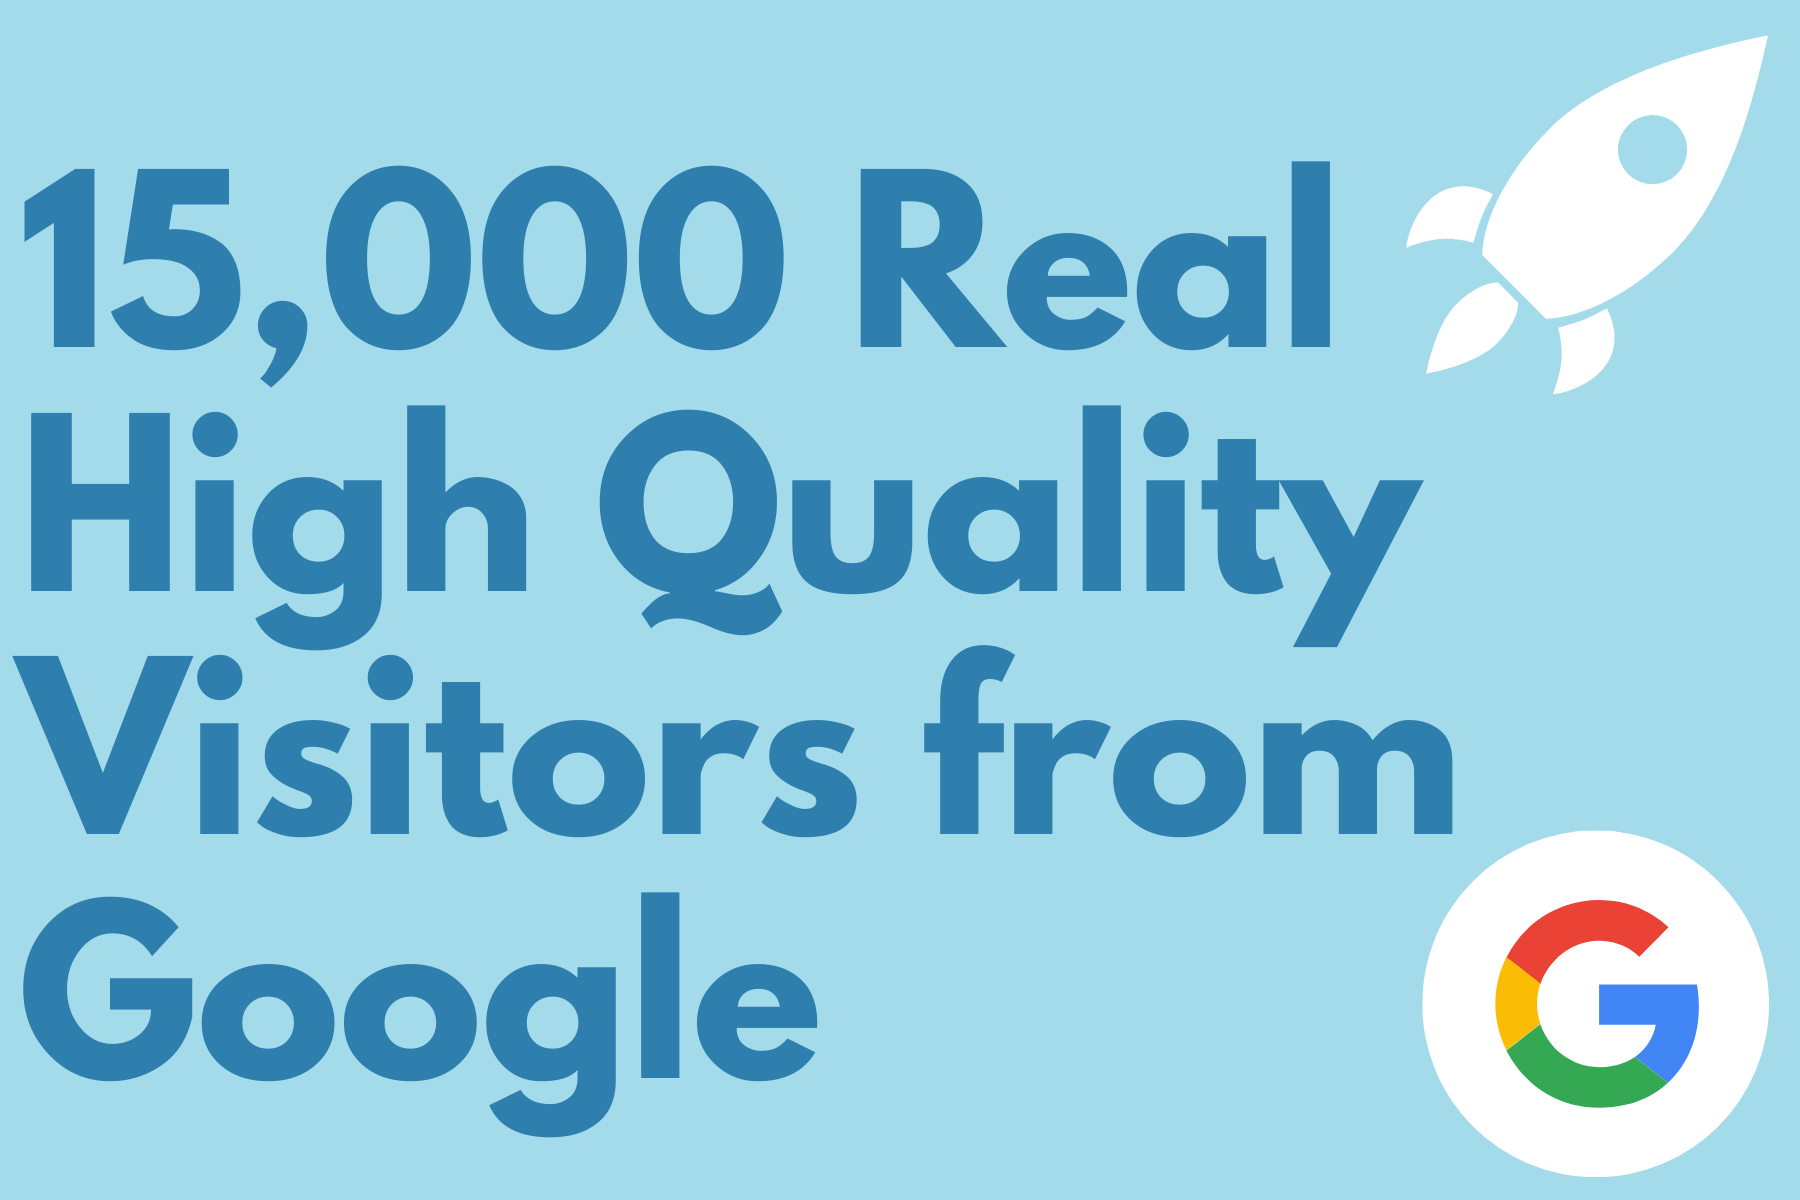 15,000 real high quality visitors from google